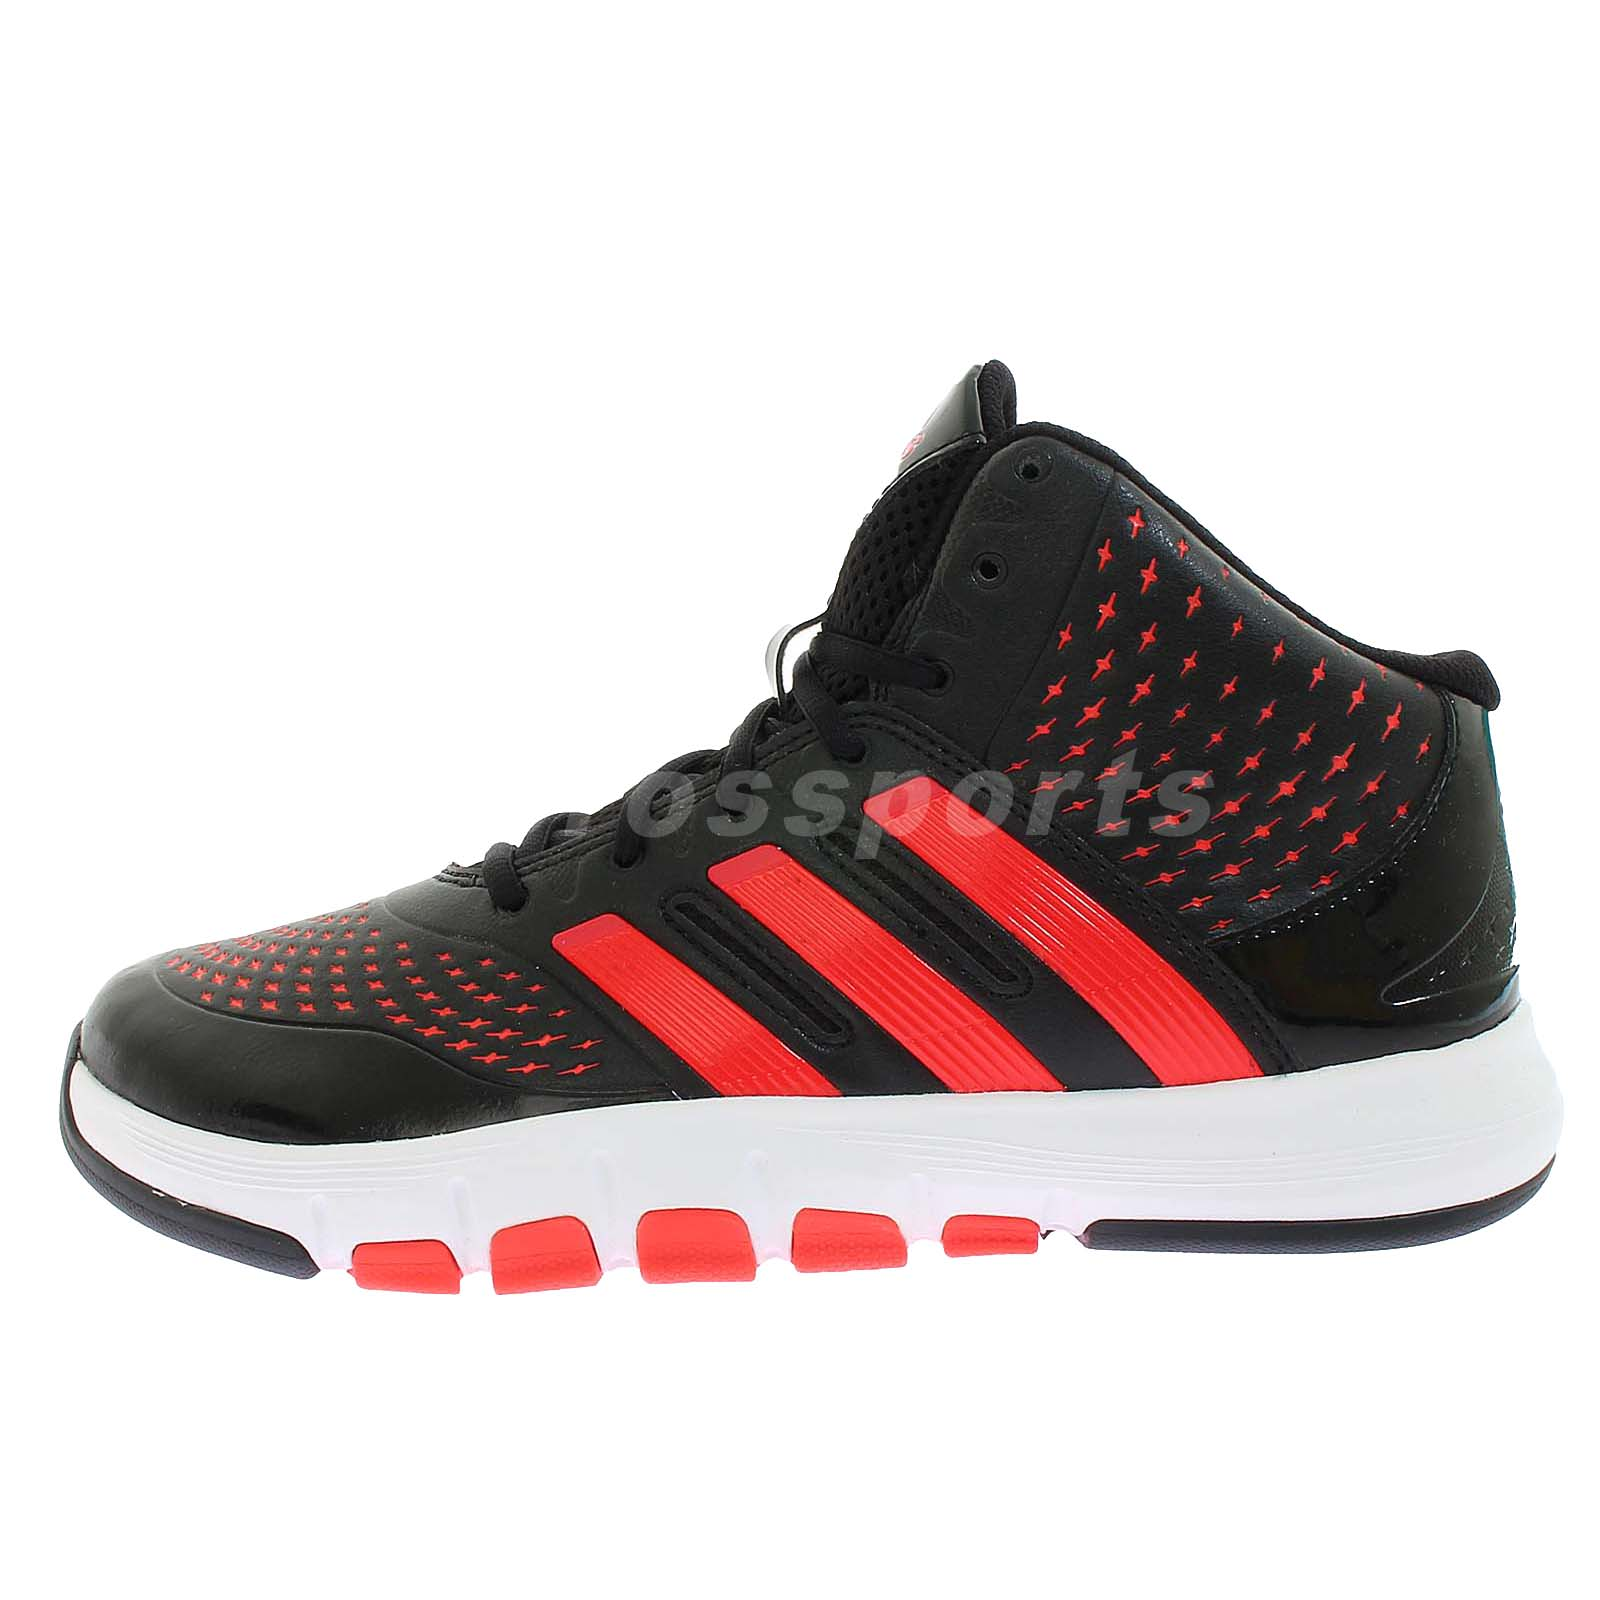 Shoes For Men 2013 Adidas Adidas Payoff 2...